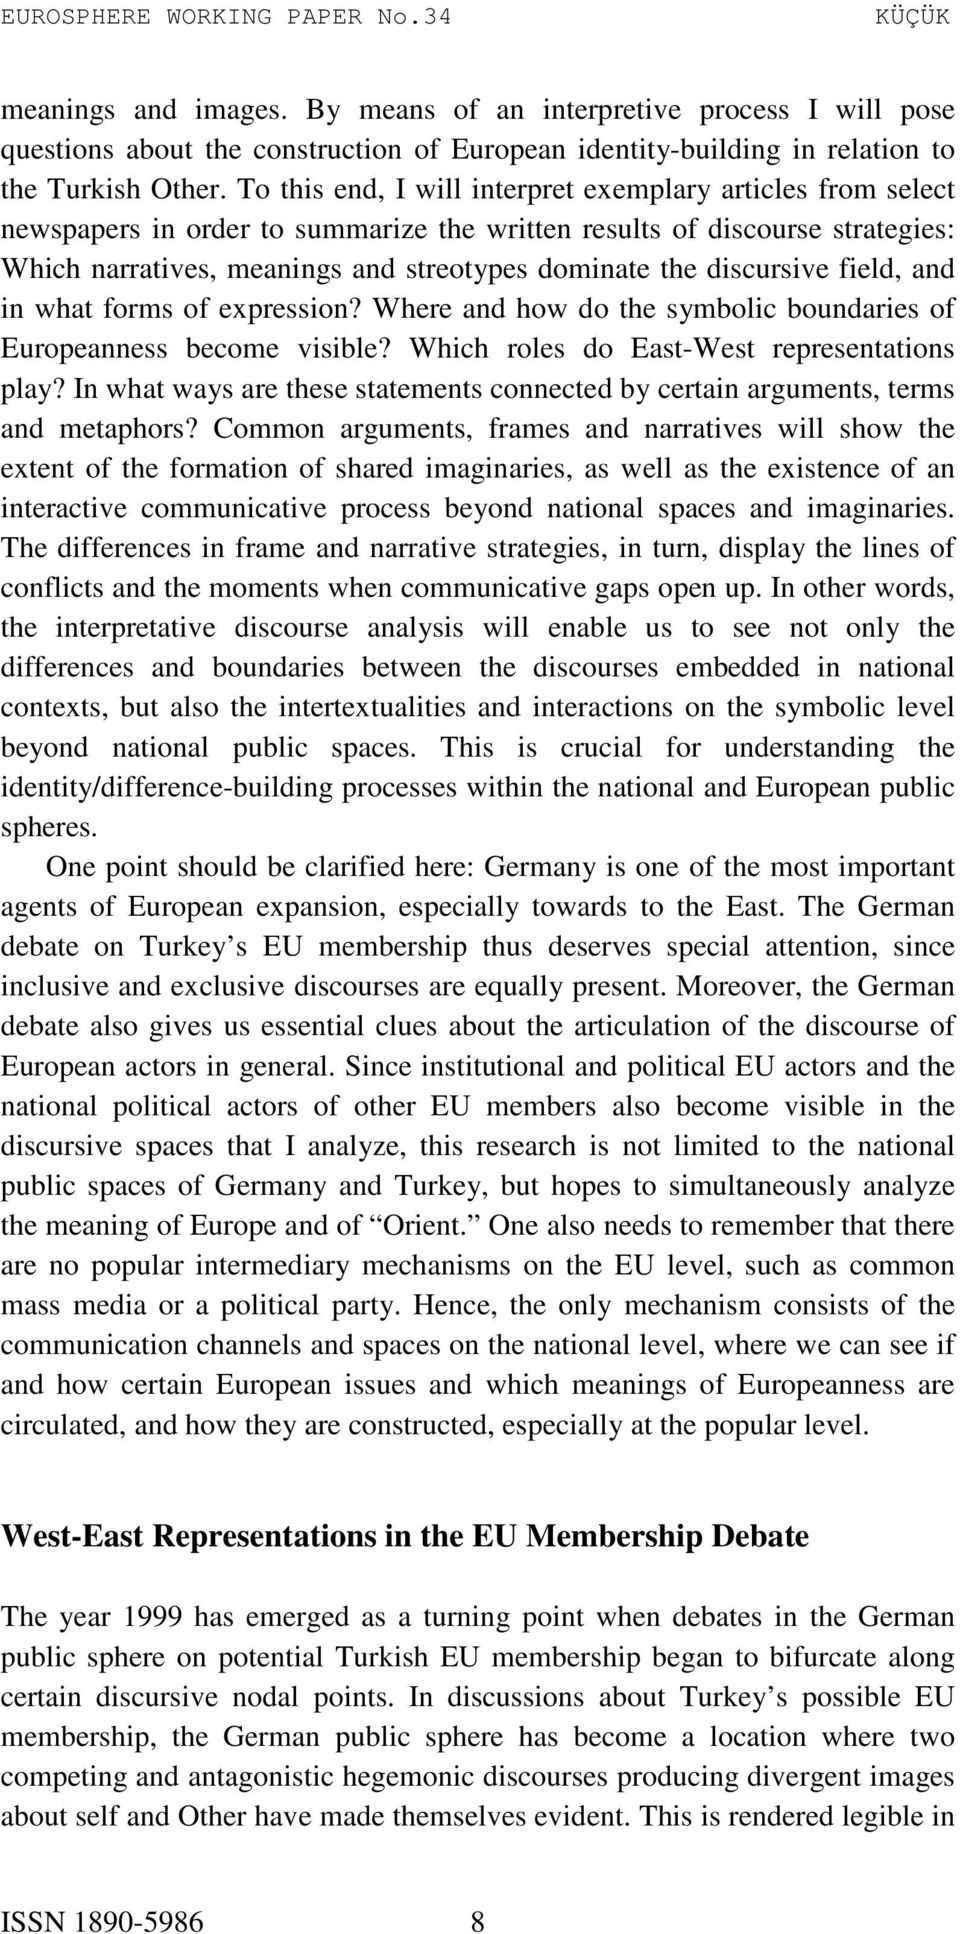 discursive field, and in what forms of expression? Where and how do the symbolic boundaries of Europeanness become visible? Which roles do East-West representations play?